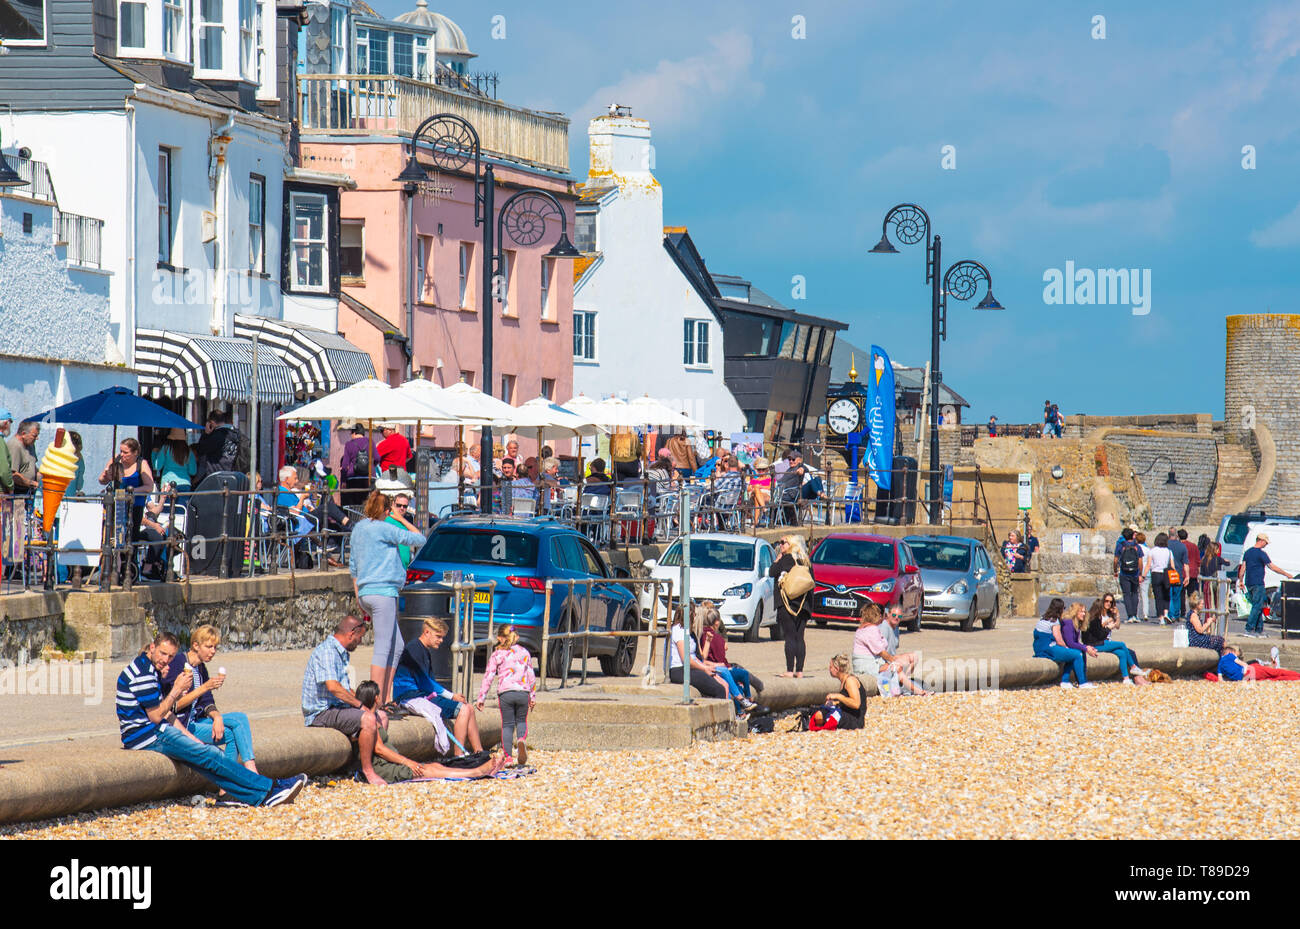 Lyme Regis, Dorset, UK. 12th May 2019. UK Weather: The beach at Lyme Regis was unseasonably busy on Sunday afternoon as visitors enjoyed the hot sunshine and blue sky.  Temperatures are set to soar with highs of 25 degrees celsius forecast for the coming week. Credit: Celia McMahon/Alamy Live News. - Stock Image